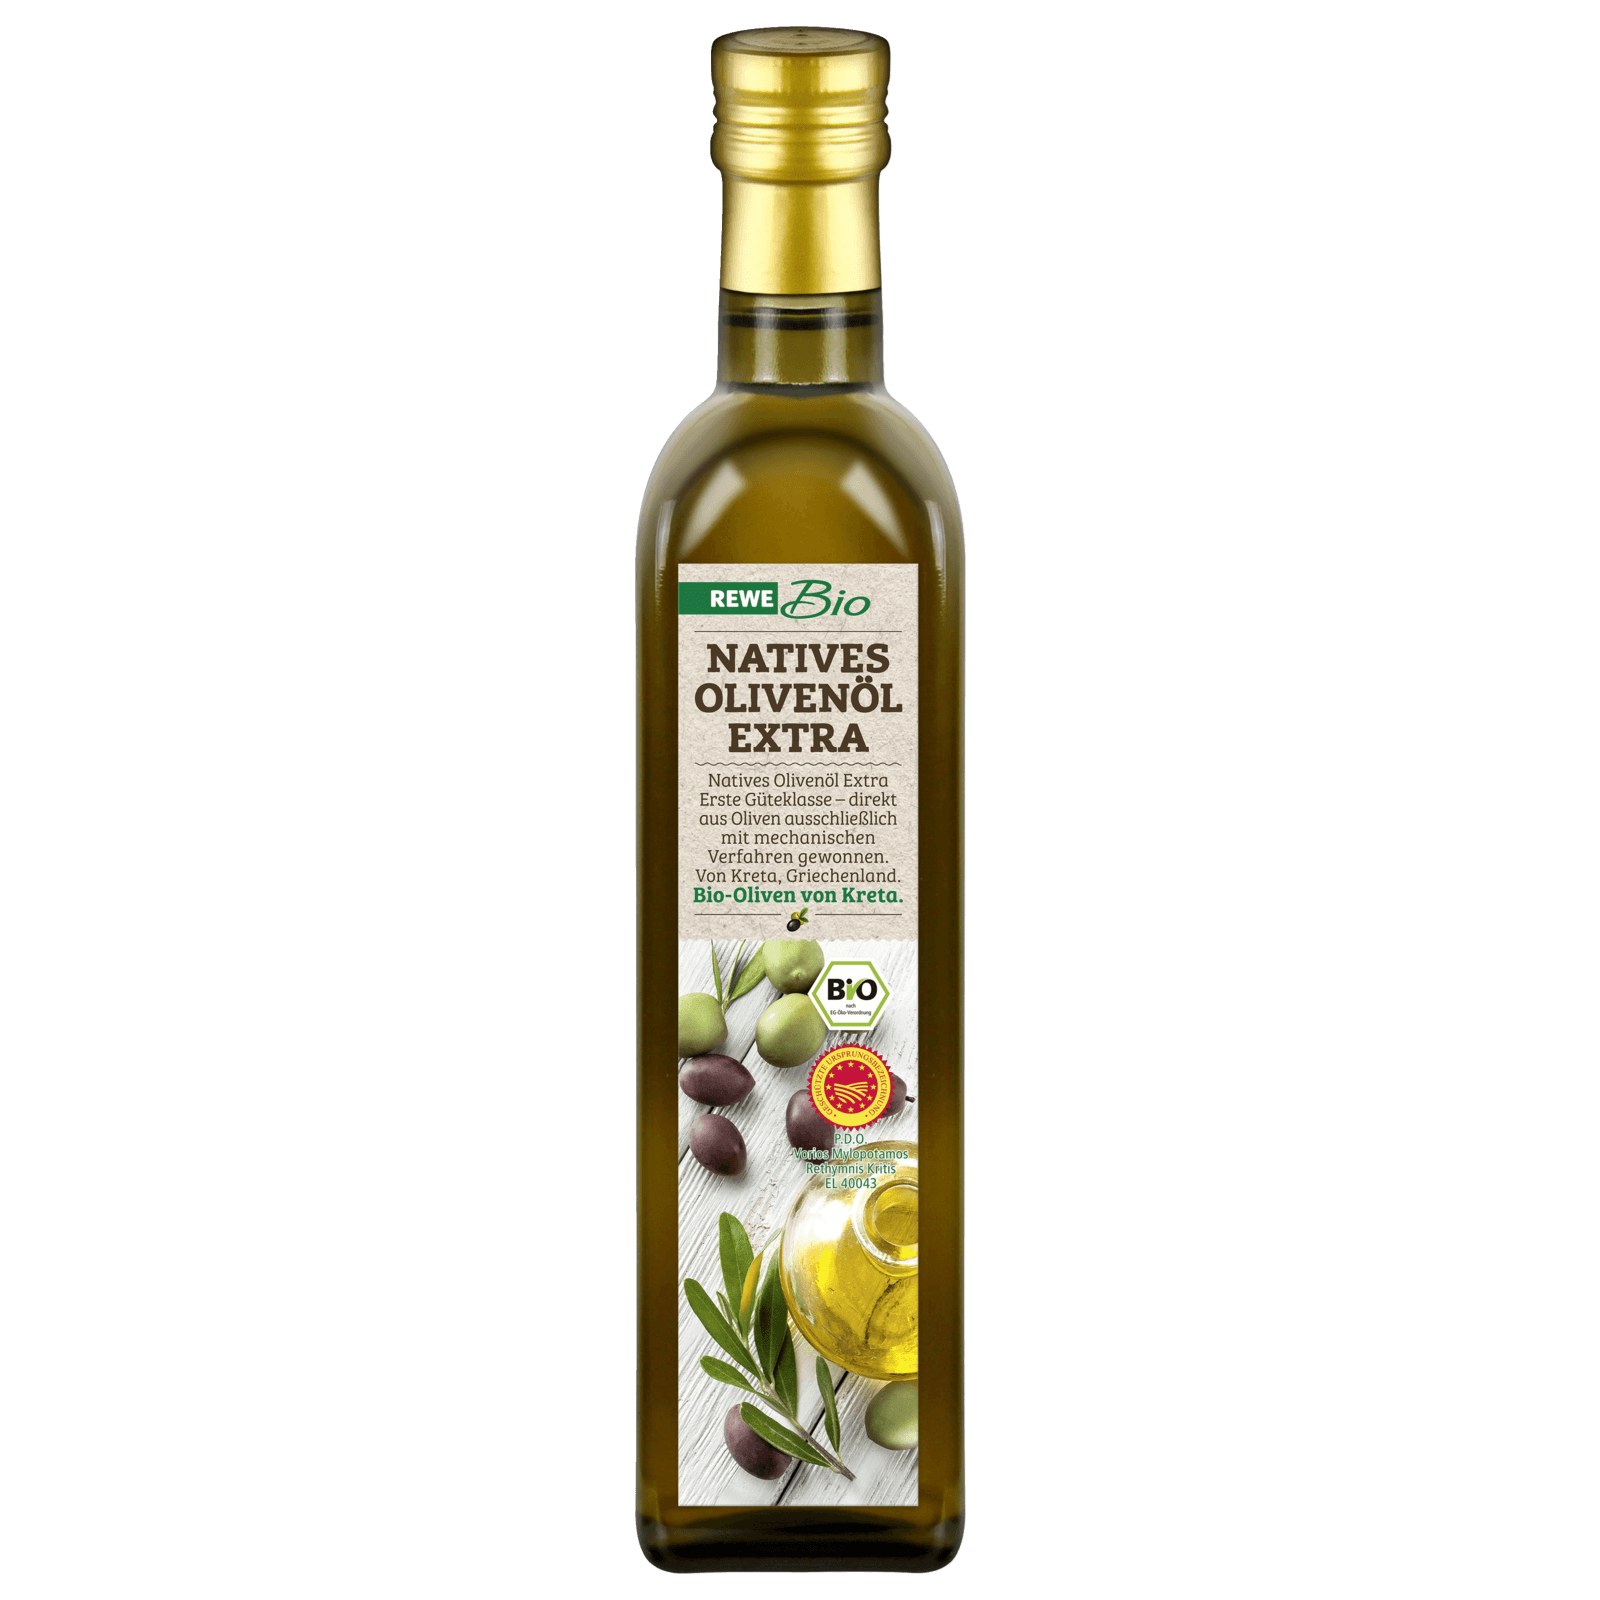 REWE Bio Natives Olivenöl extra 500ml